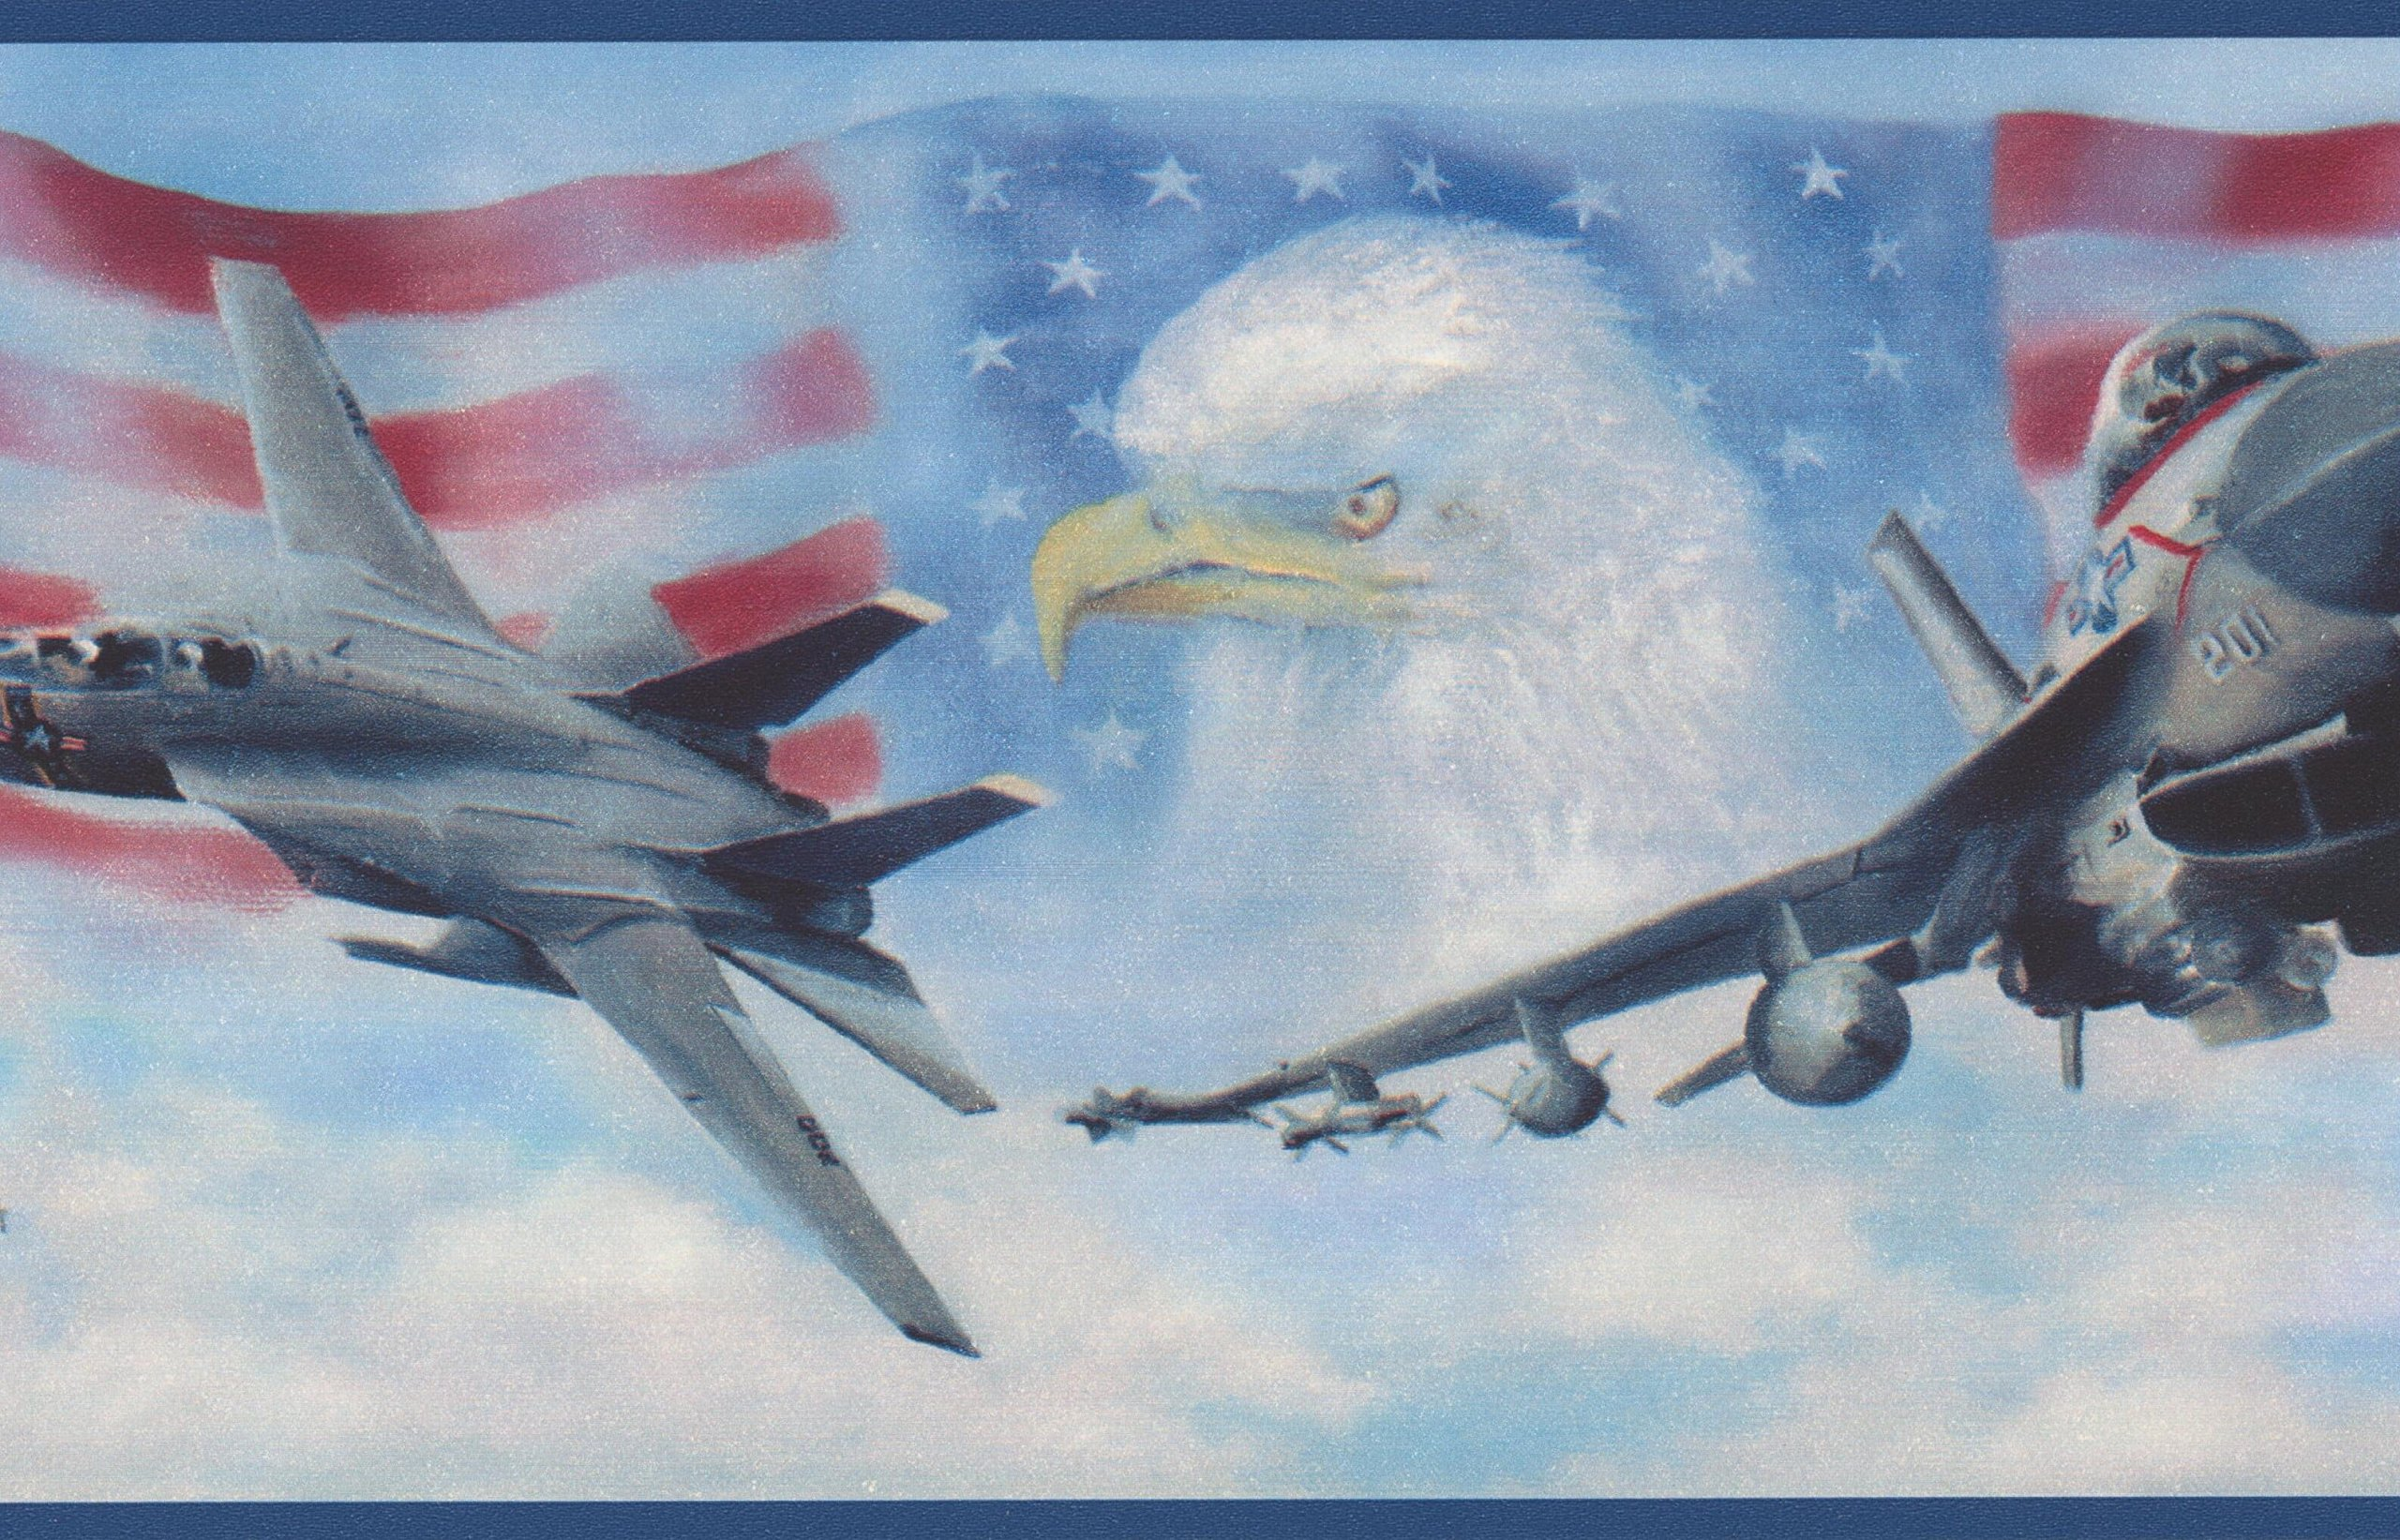 USA Air Force Jet Fighters American Flag Bald Eagle Patriotic Wallpaper Border Retro Design, Roll 15' x 7''